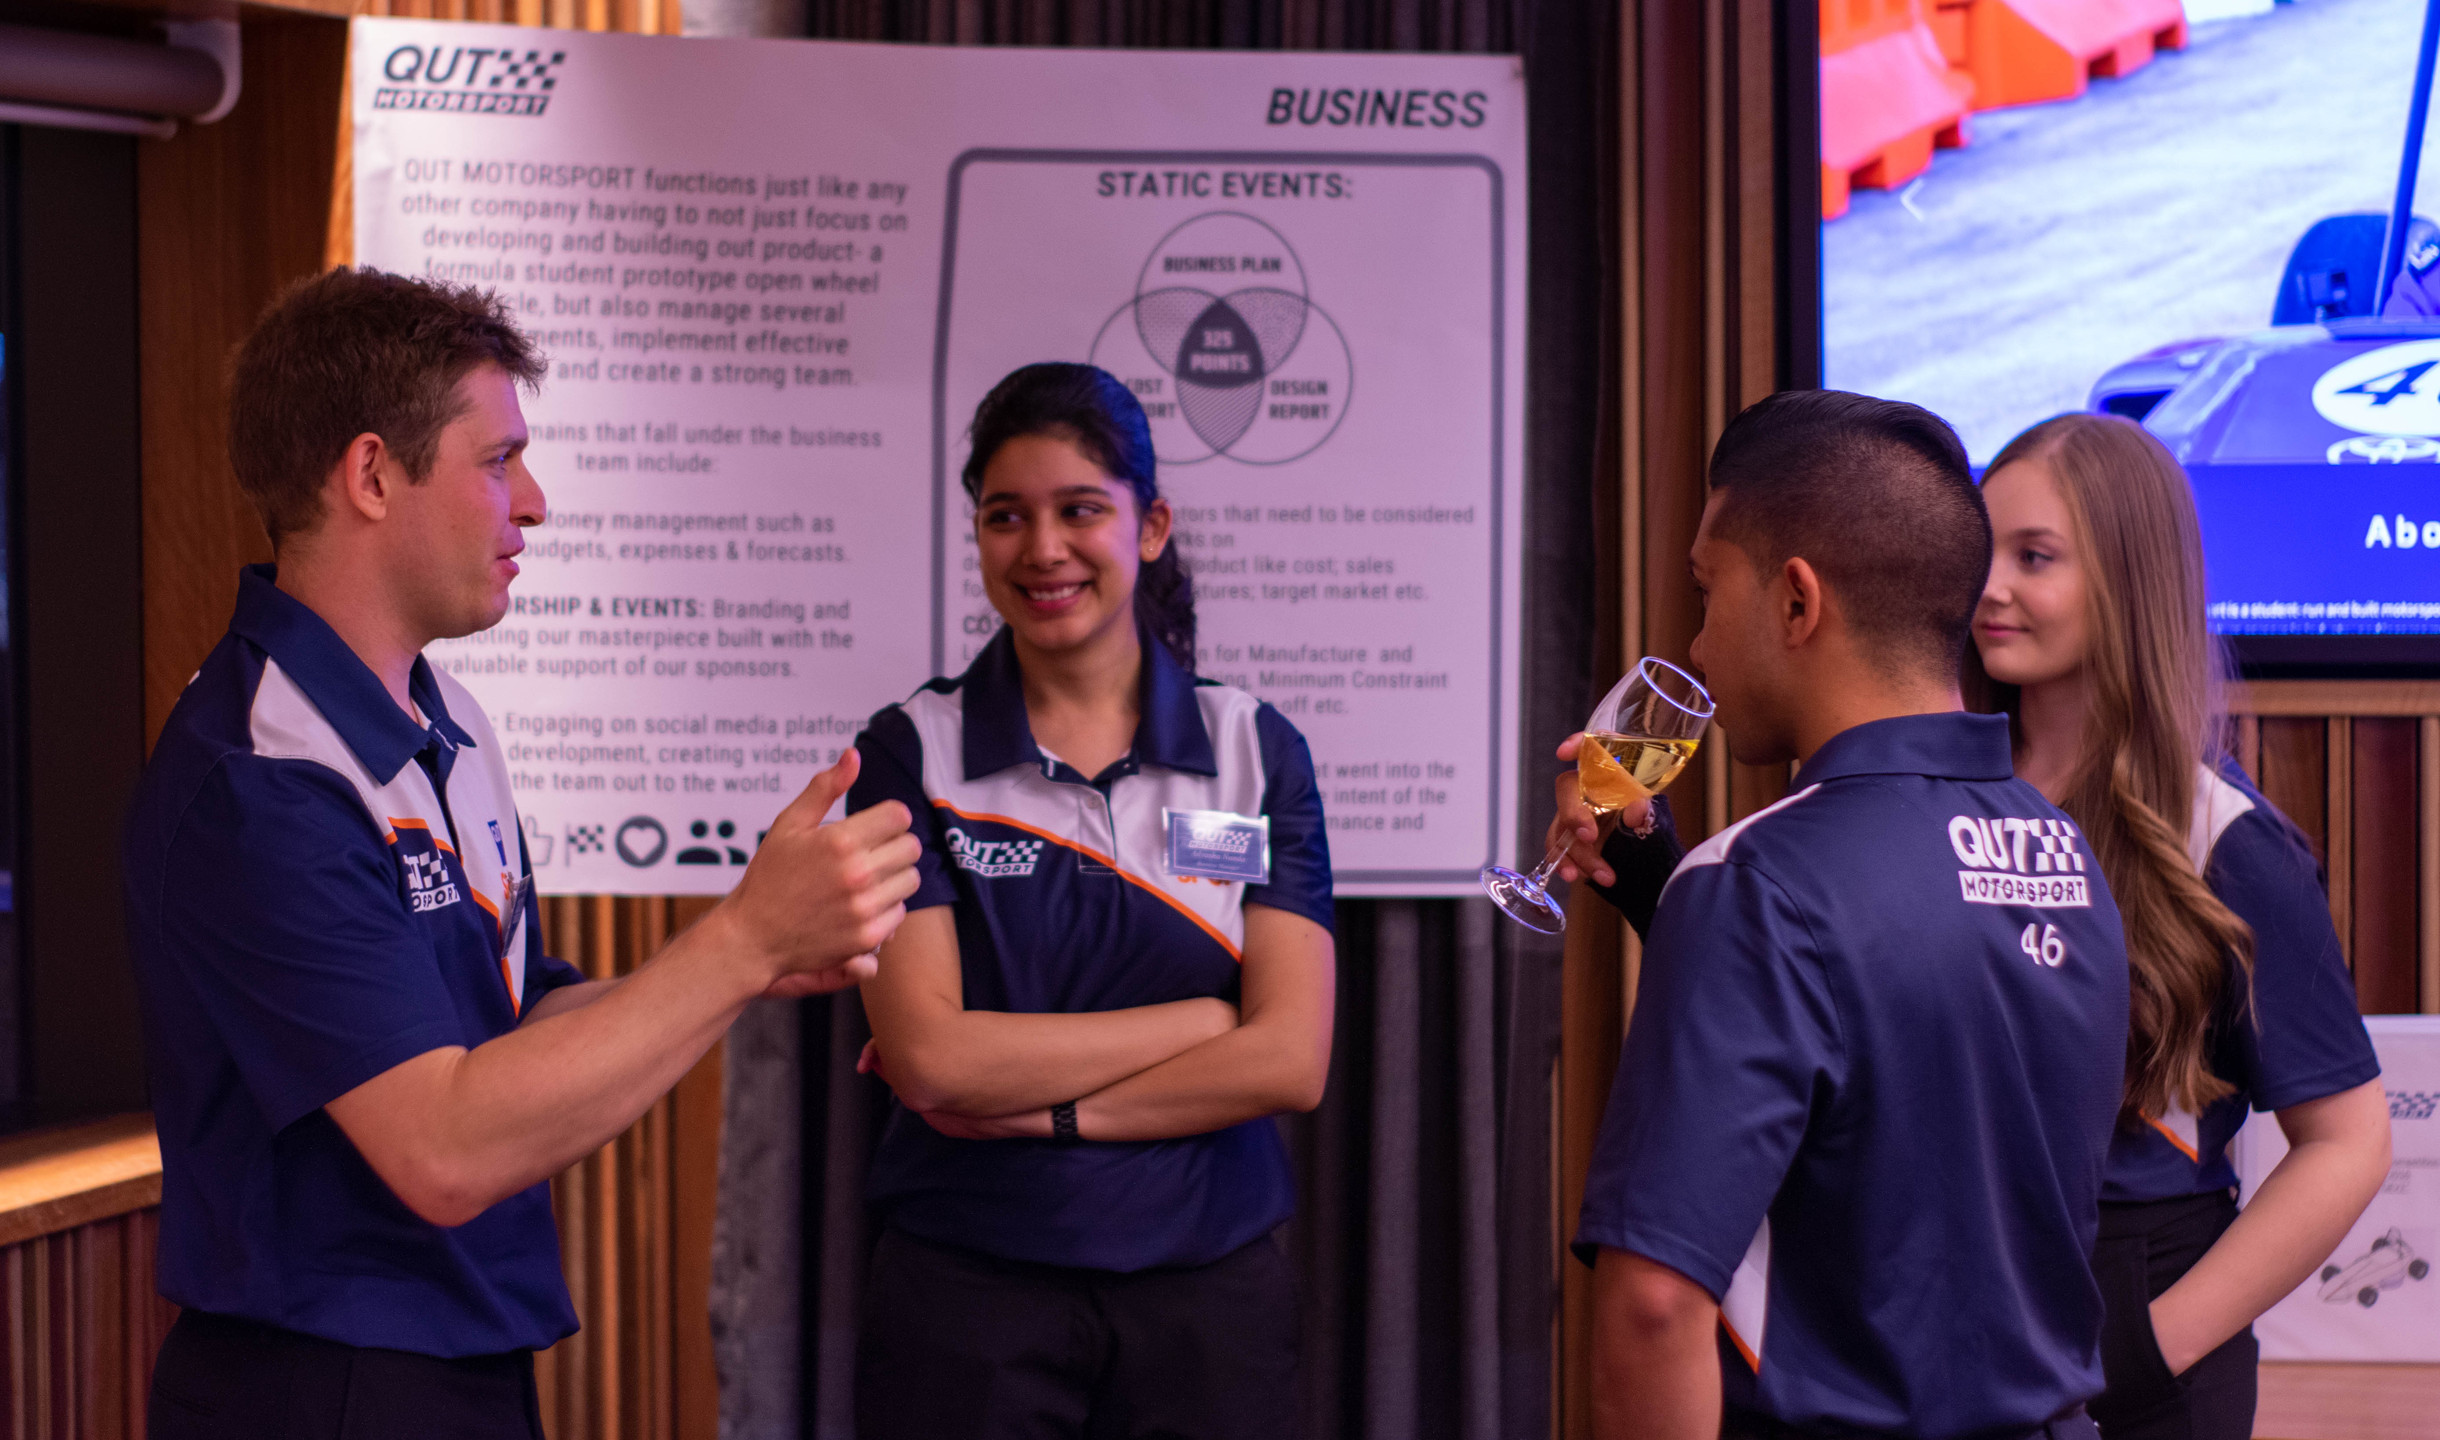 Some of our team Members and their displays at the Industry Night. Photo: Michael Hanau